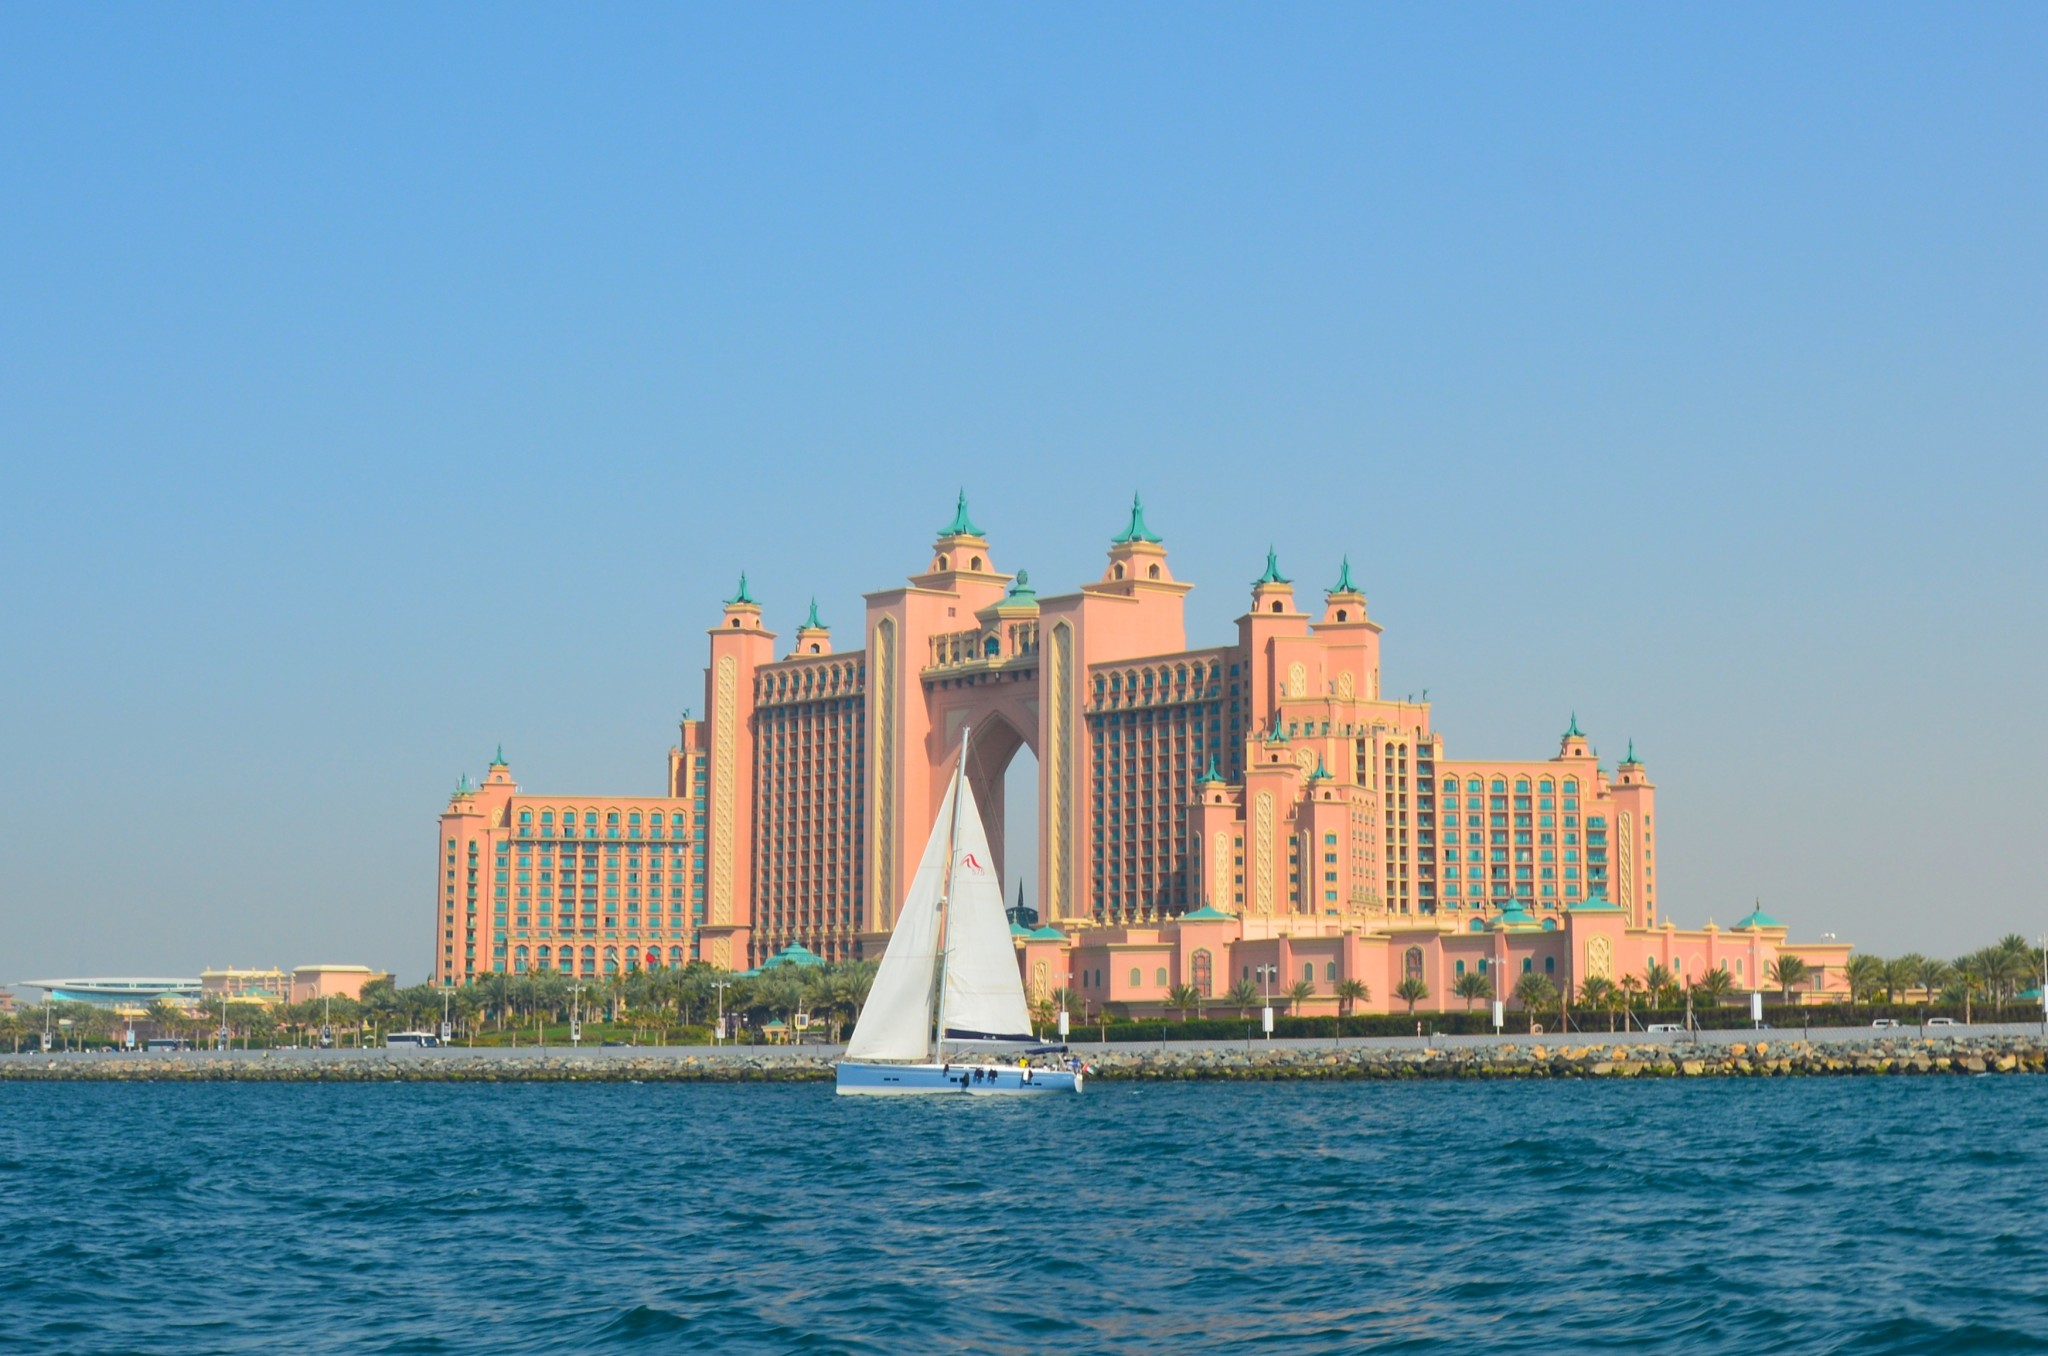 Atlantis from the sea